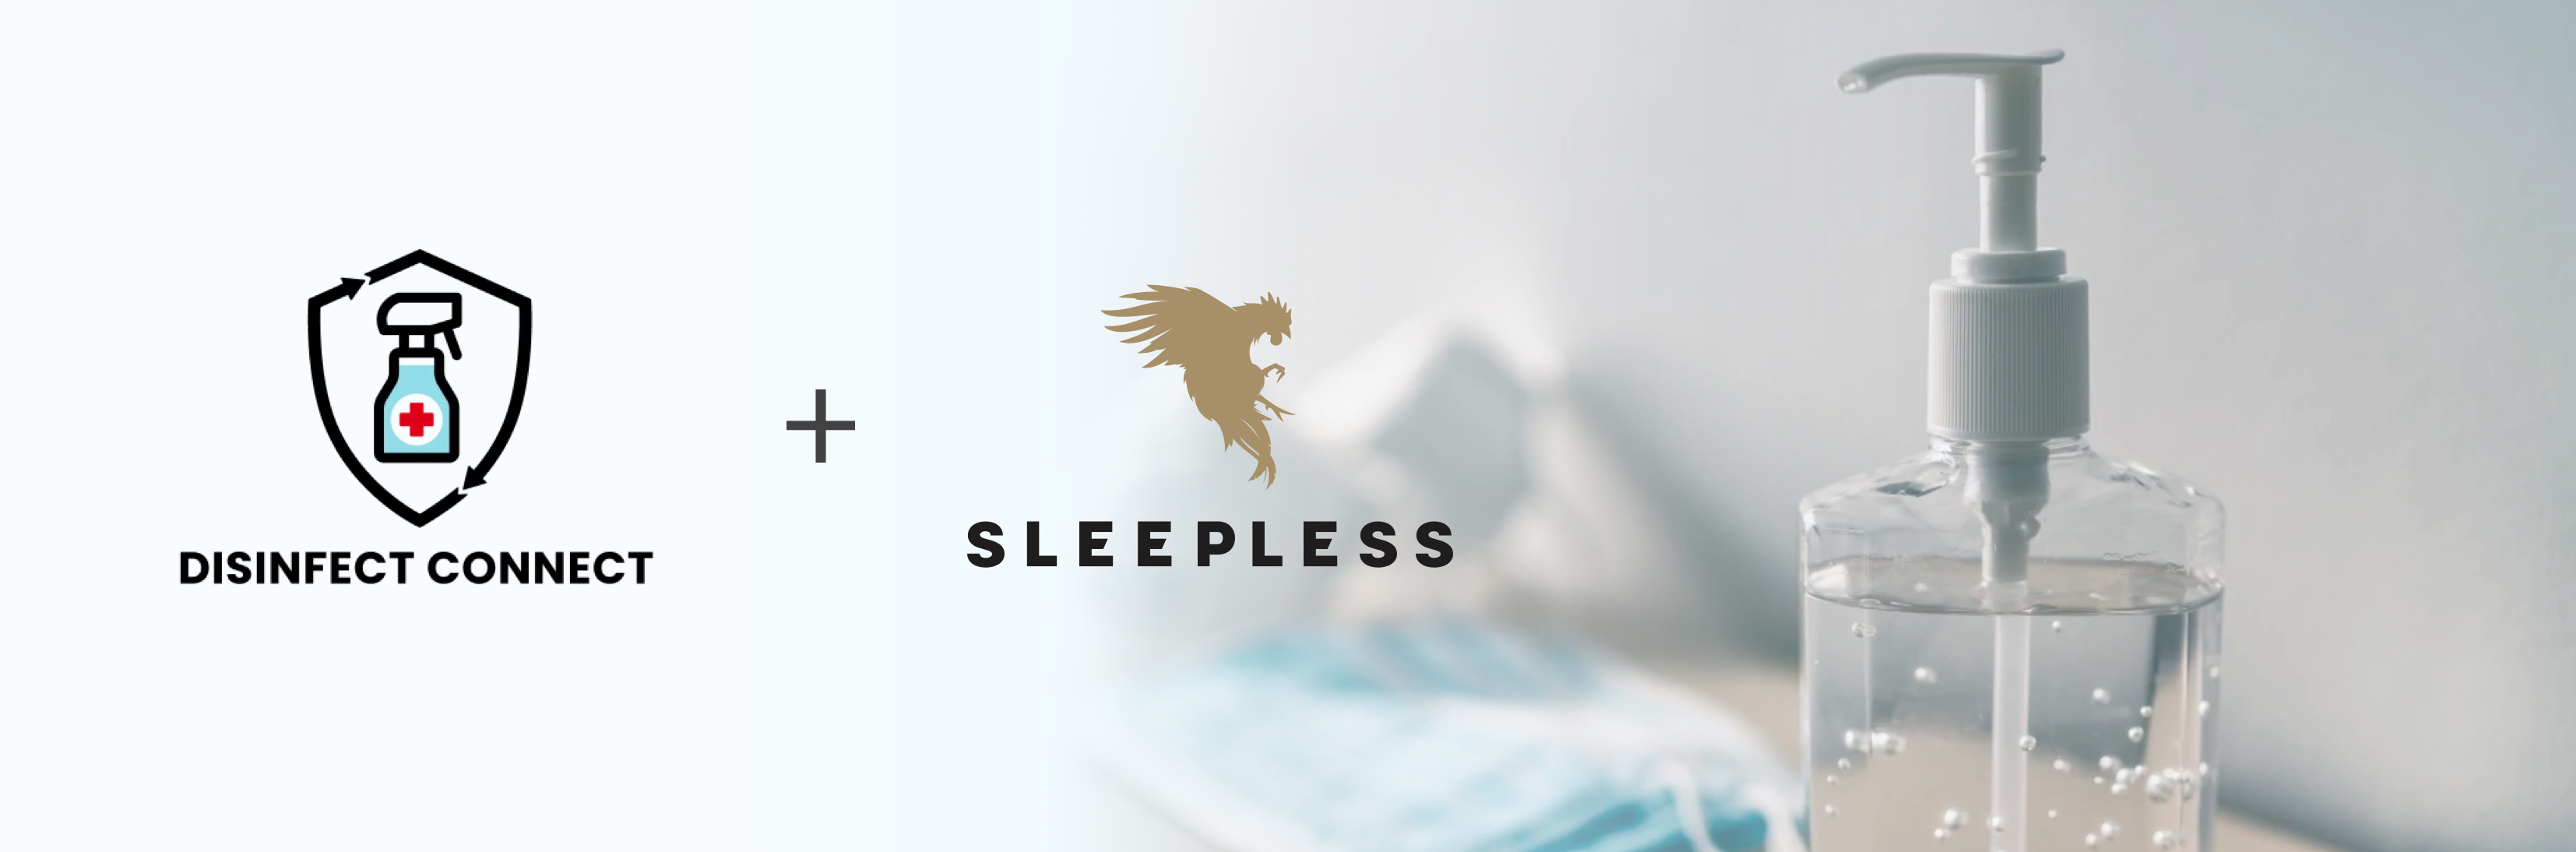 Disinfect Connect + Sleepless